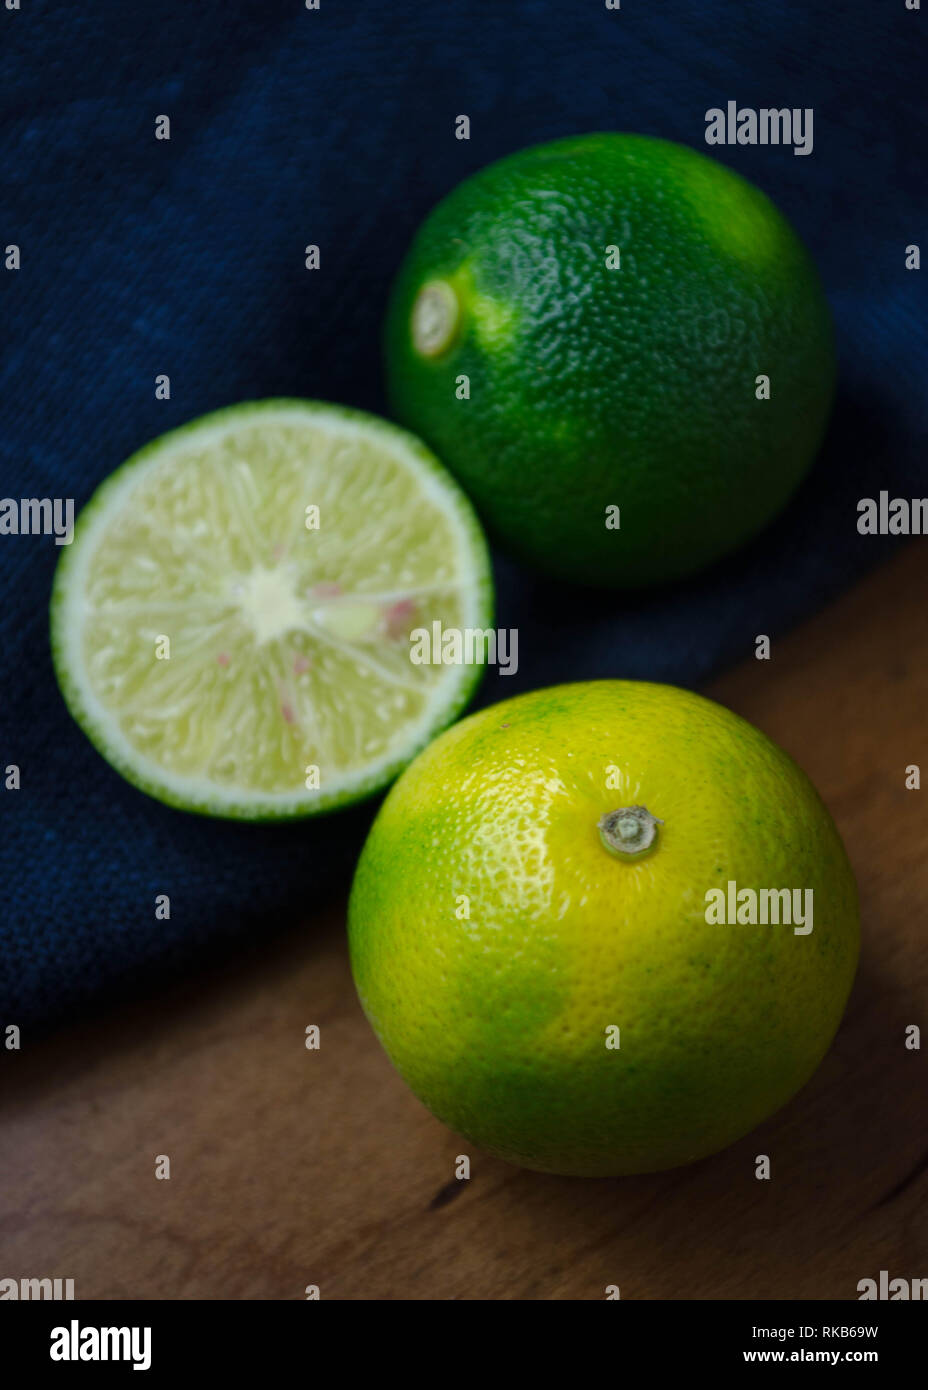 Sudachi - a very small, lime-like, sour citrus fruit native to Japan and used in traditional Japanese cuisine. - Stock Image